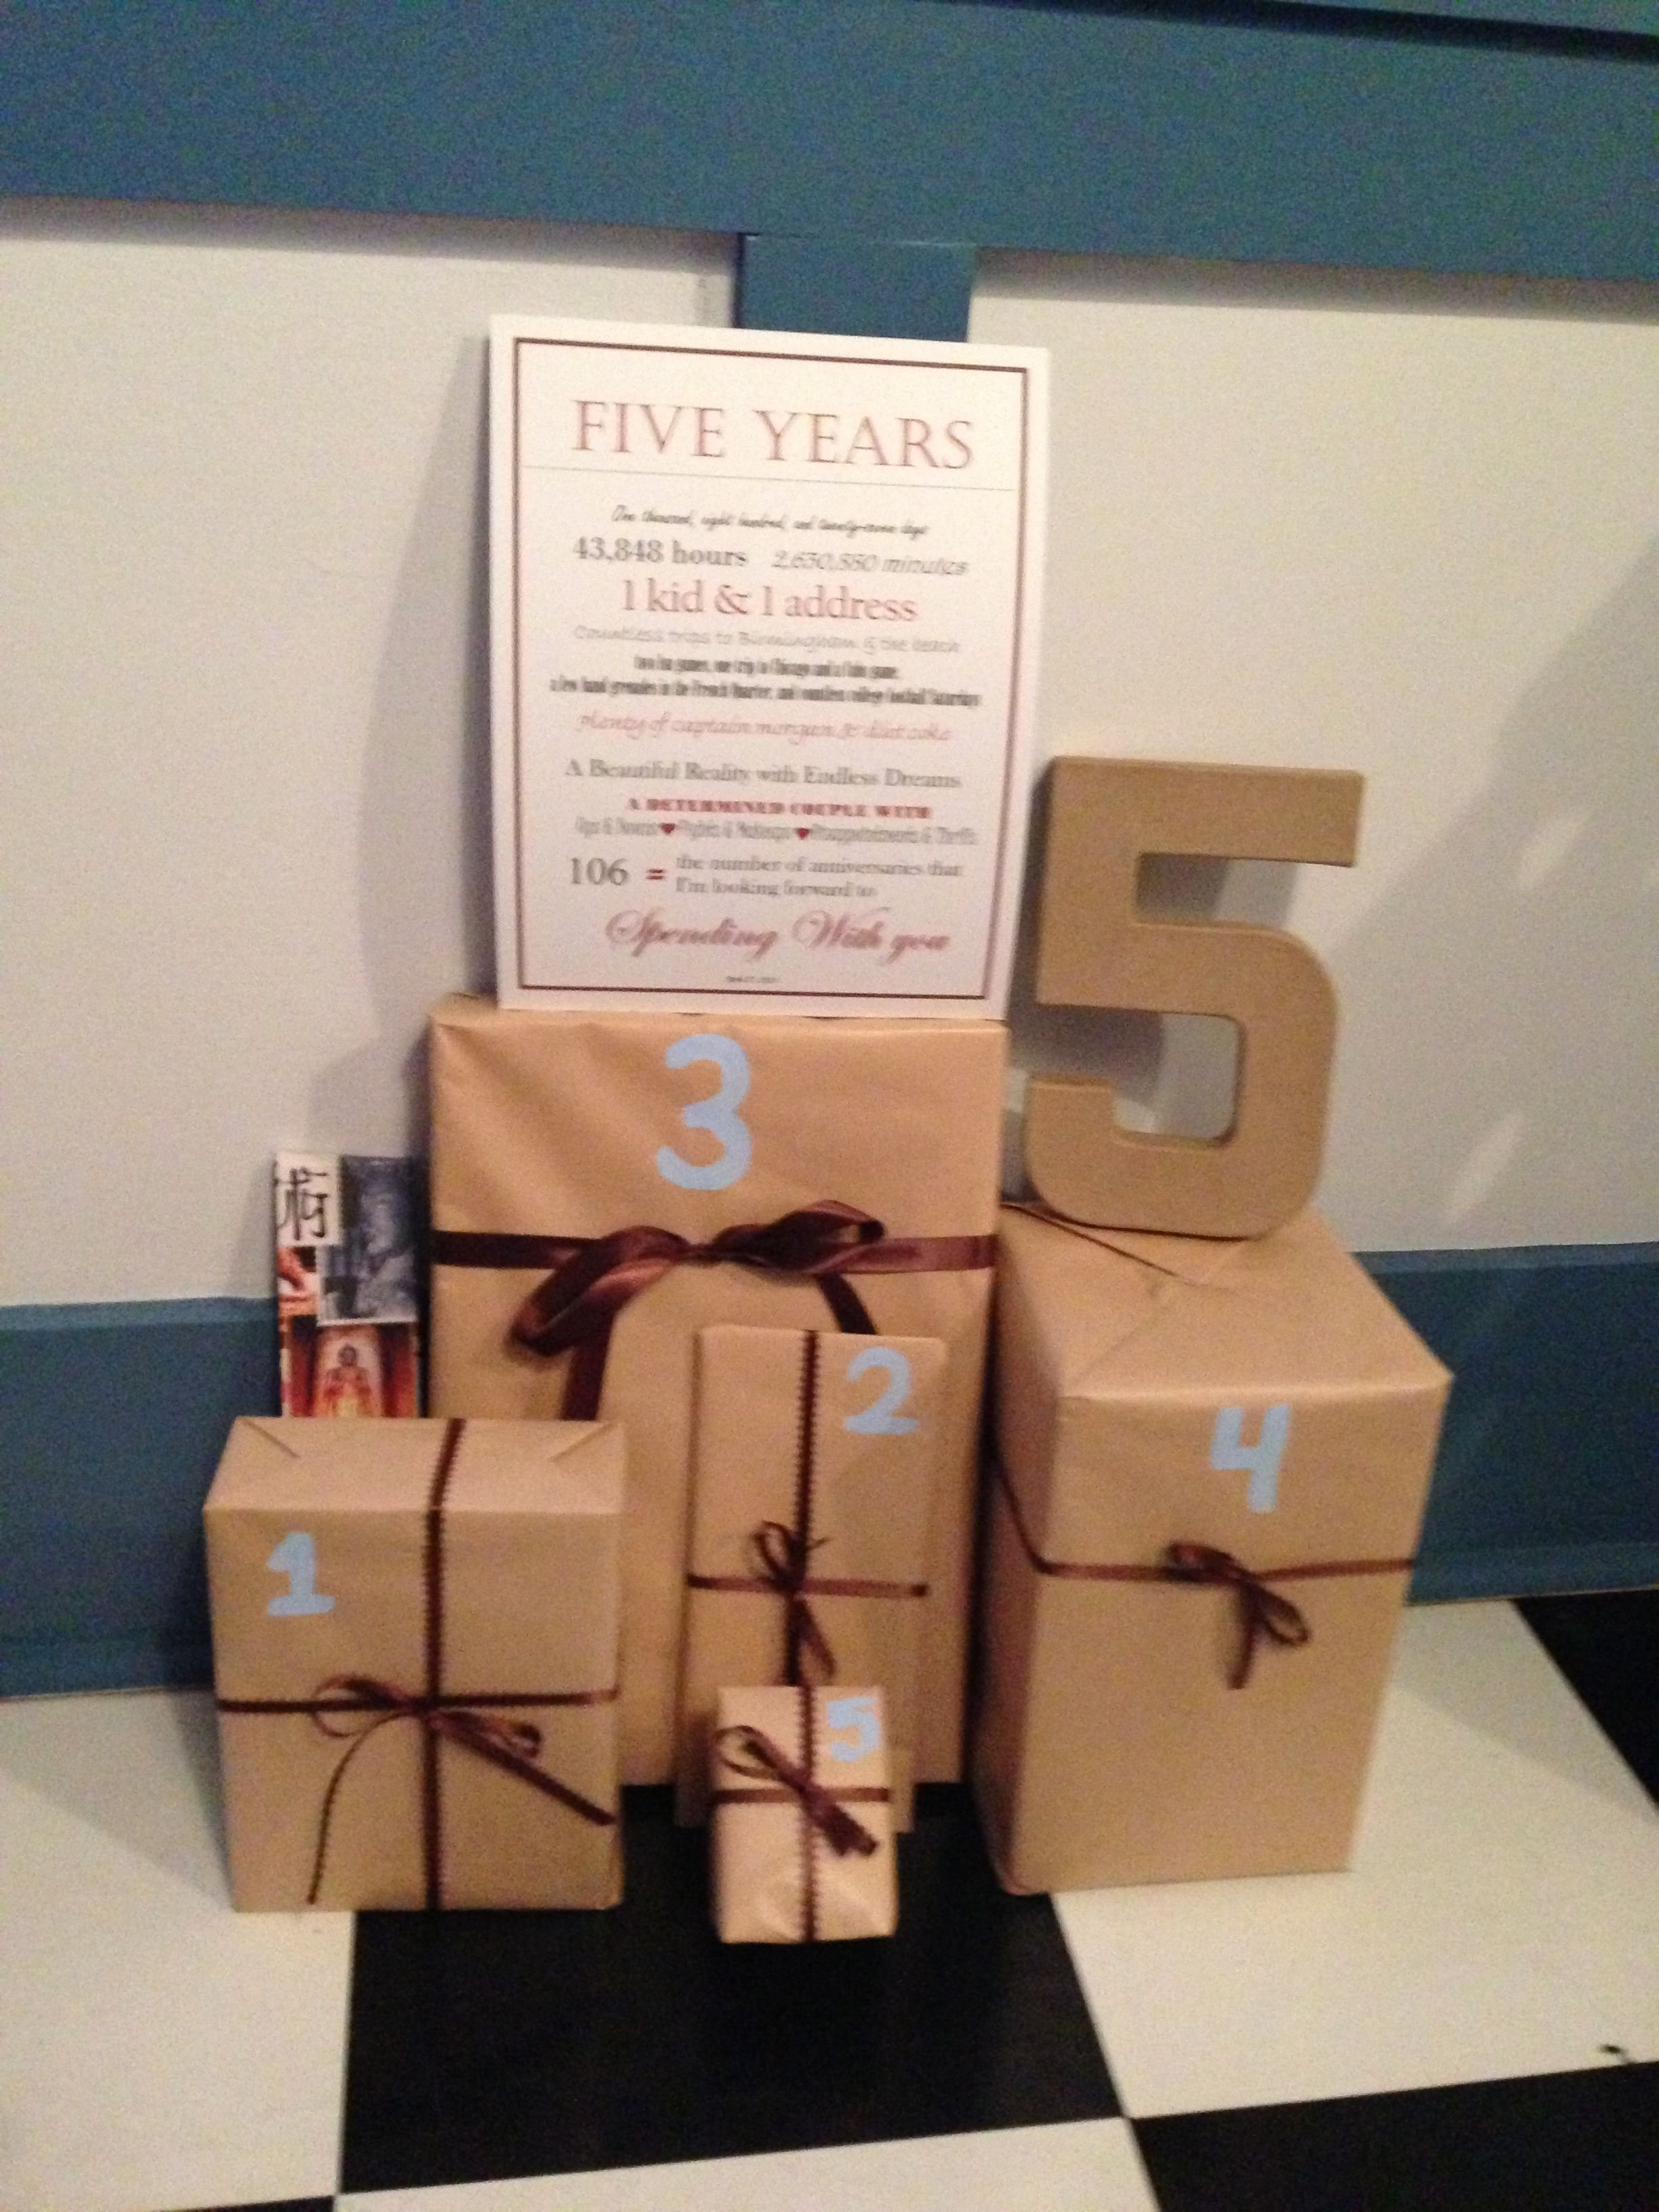 10 Gorgeous Five Year Anniversary Gift Ideas 5 year anniversary 1 gift that reminds you of each year of marriage 10 2021